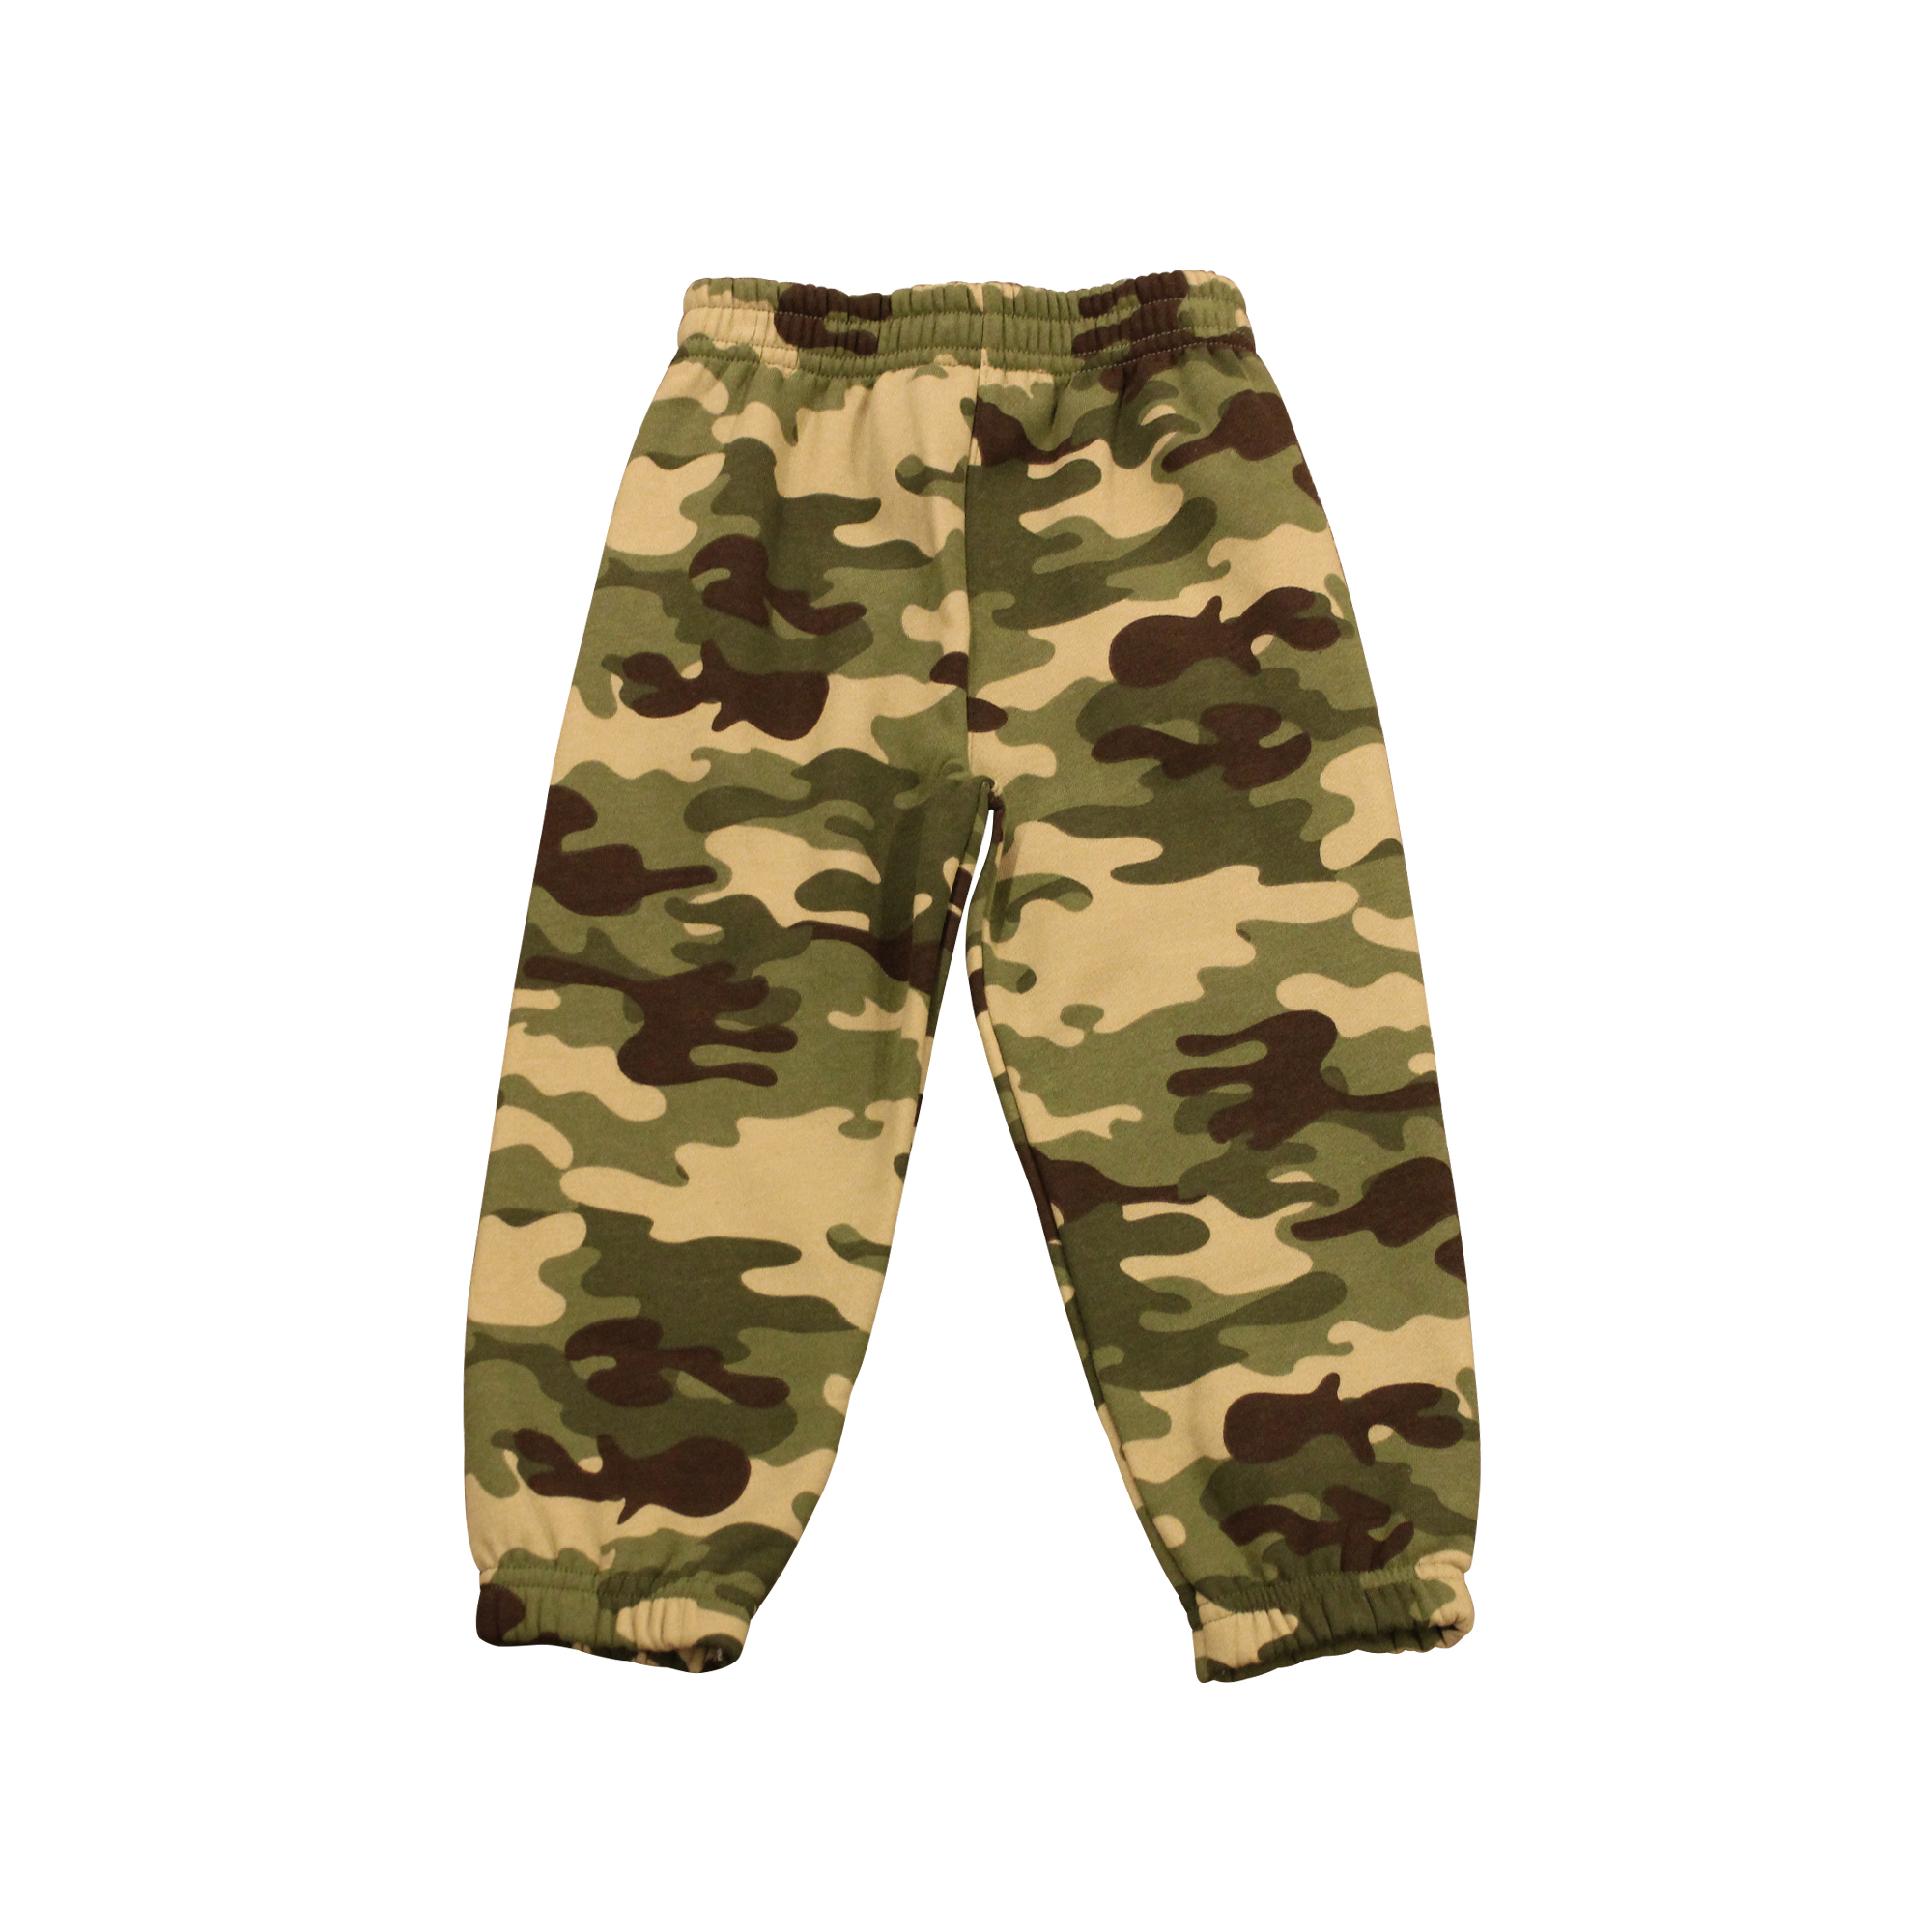 Garanimals Baby Toddler Boys' Print Fleece Joggers